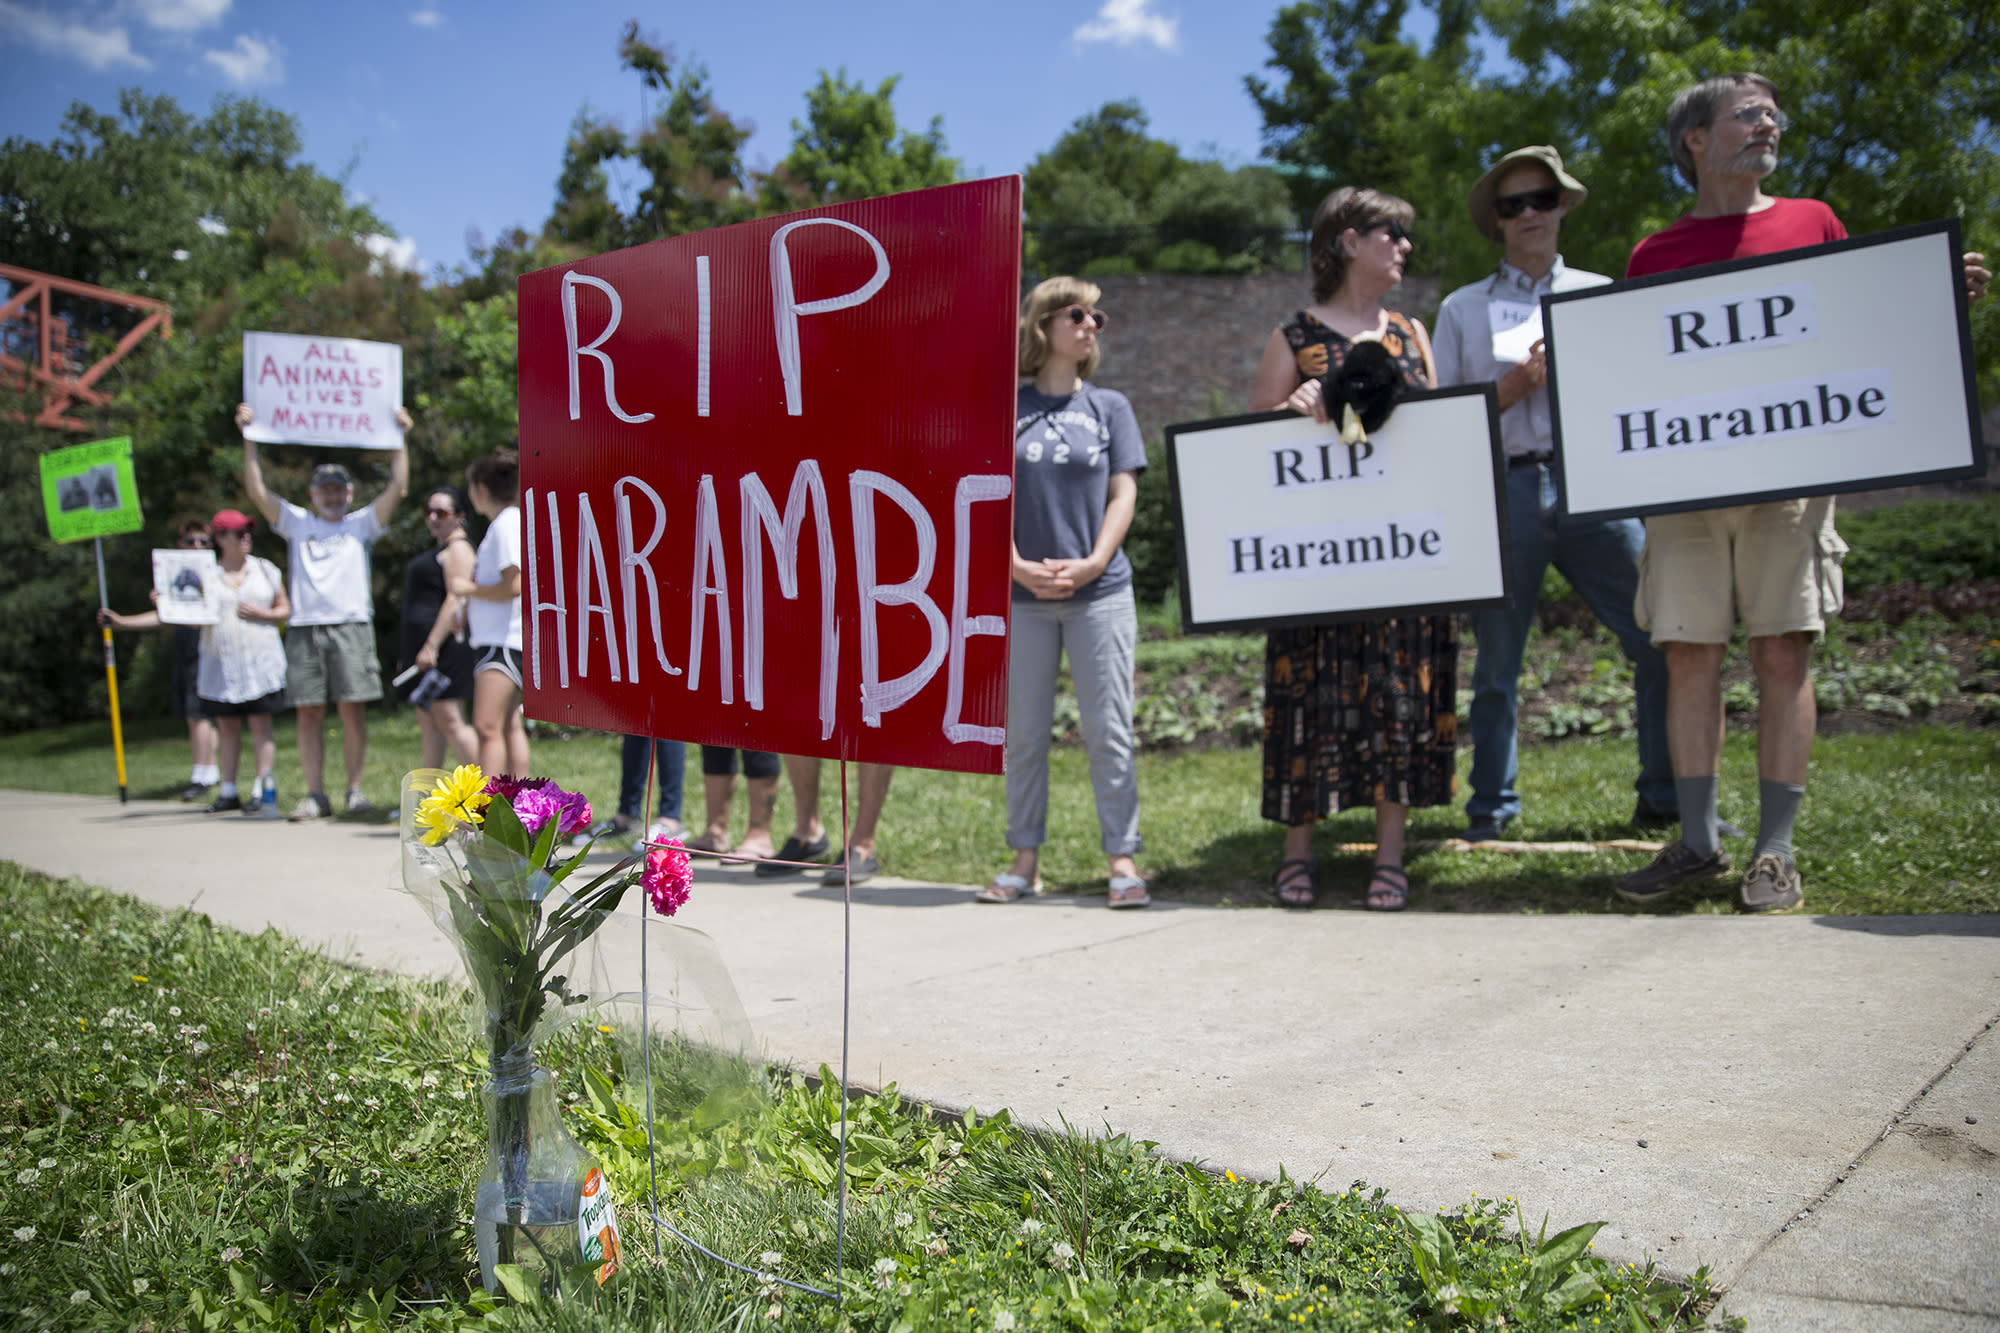 <p>Animal rights activists and mourners gather for a Memorial Day vigil outside the Cincinnati Zoo & Botanical Garden, Monday, May 30, 2016 in Cincinnati for Harambe, the gorilla killed Saturday at the Cincinnati Zoo after a 4-year-old boy slipped into an exhibit and a special zoo response team concluded his life was in danger. There has been an outpouring on social media of people upset about the killing of the member of an endangered species. (AP Photo/John Minchillo) </p>